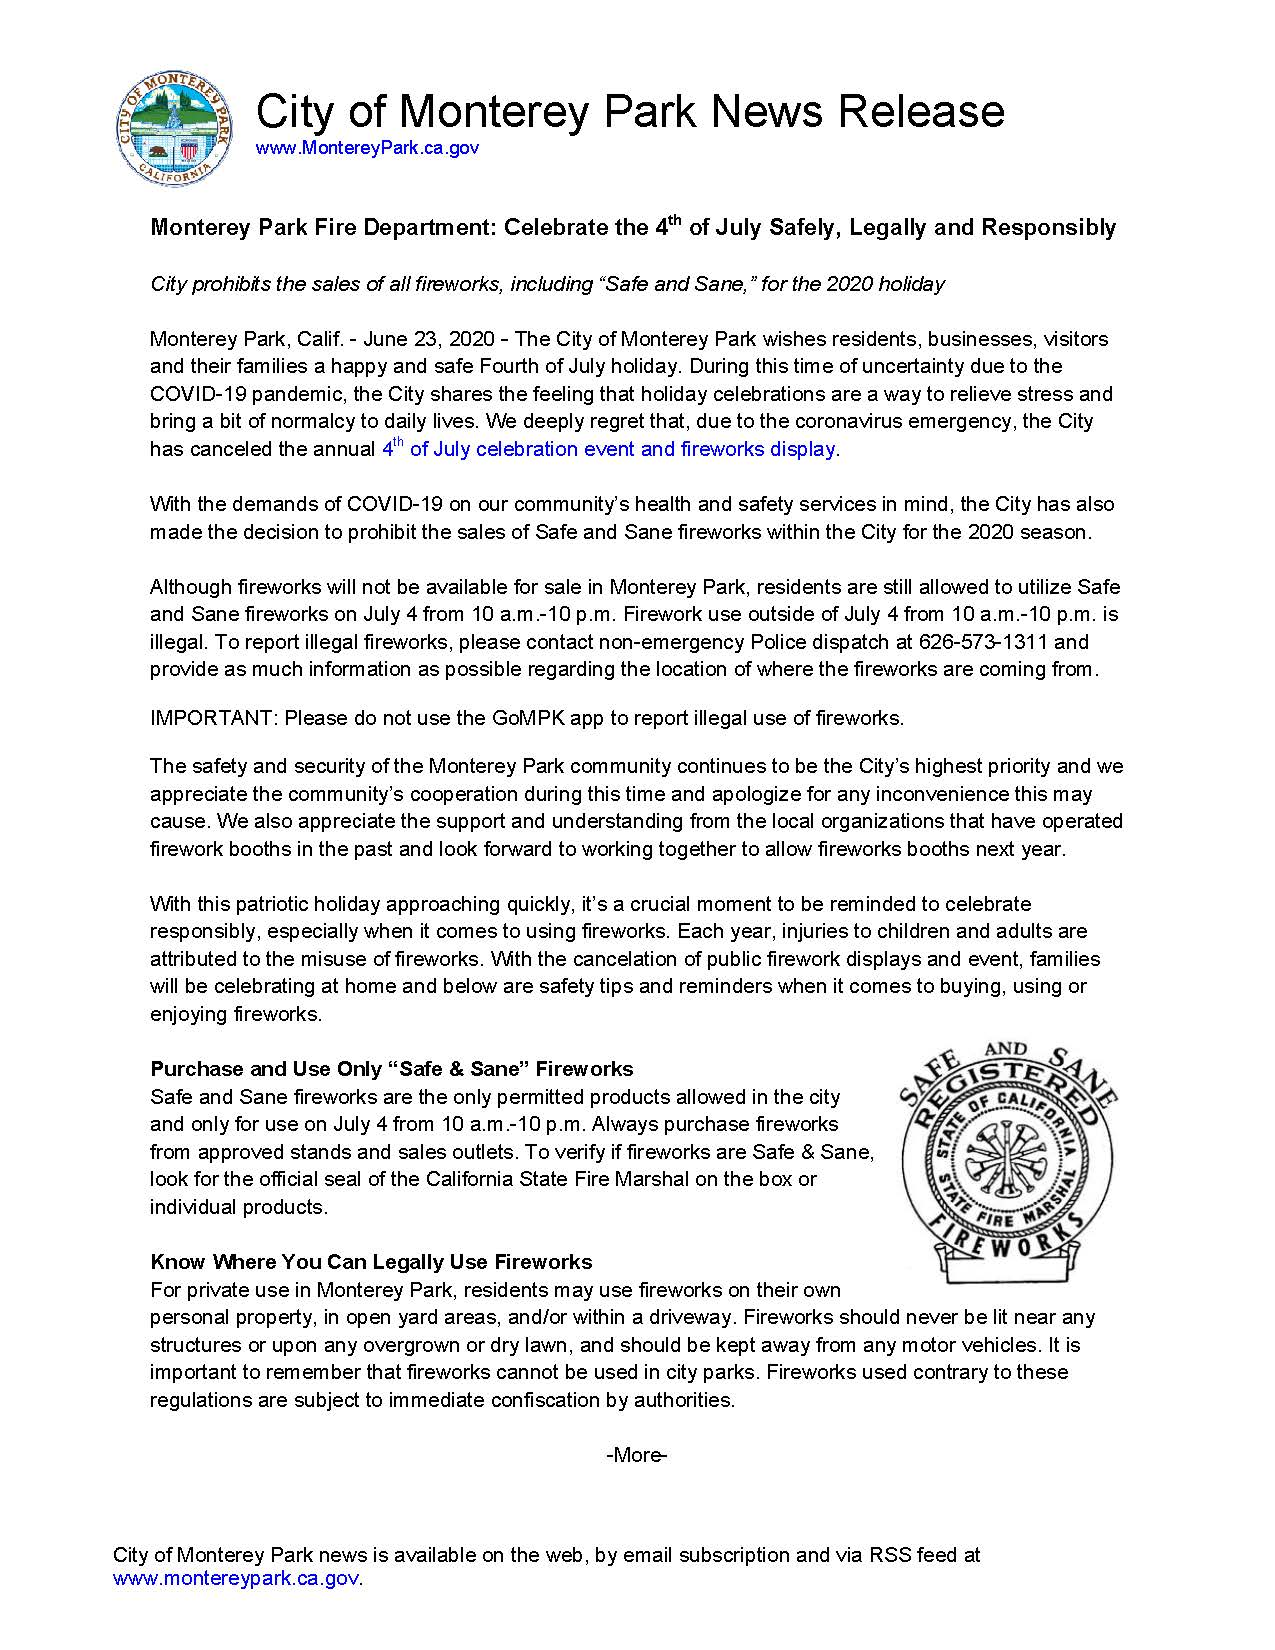 MPK News Release-Celebrate the 4th of July Safely